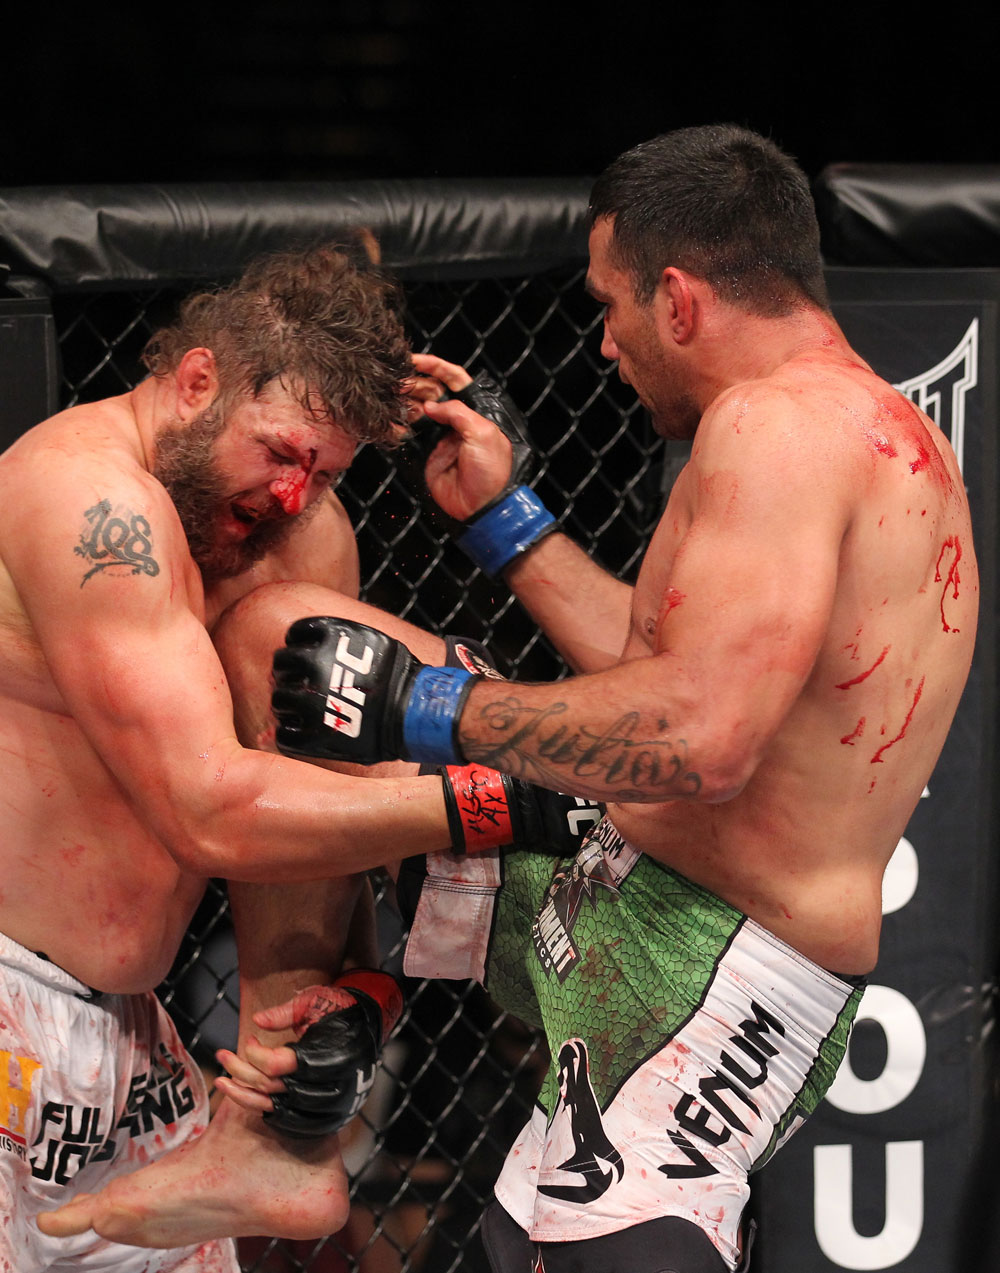 LAS VEGAS, NV - FEBRUARY 04:  Fabricio Werdum (left) knees Roy Nelson during the UFC 143 event at Mandalay Bay Events Center on February 4, 2012 in Las Vegas, Nevada.  (Photo by Nick Laham/Zuffa LLC/Zuffa LLC via Getty Images) *** Local Caption *** Fabricio Werdum; Roy Nelson